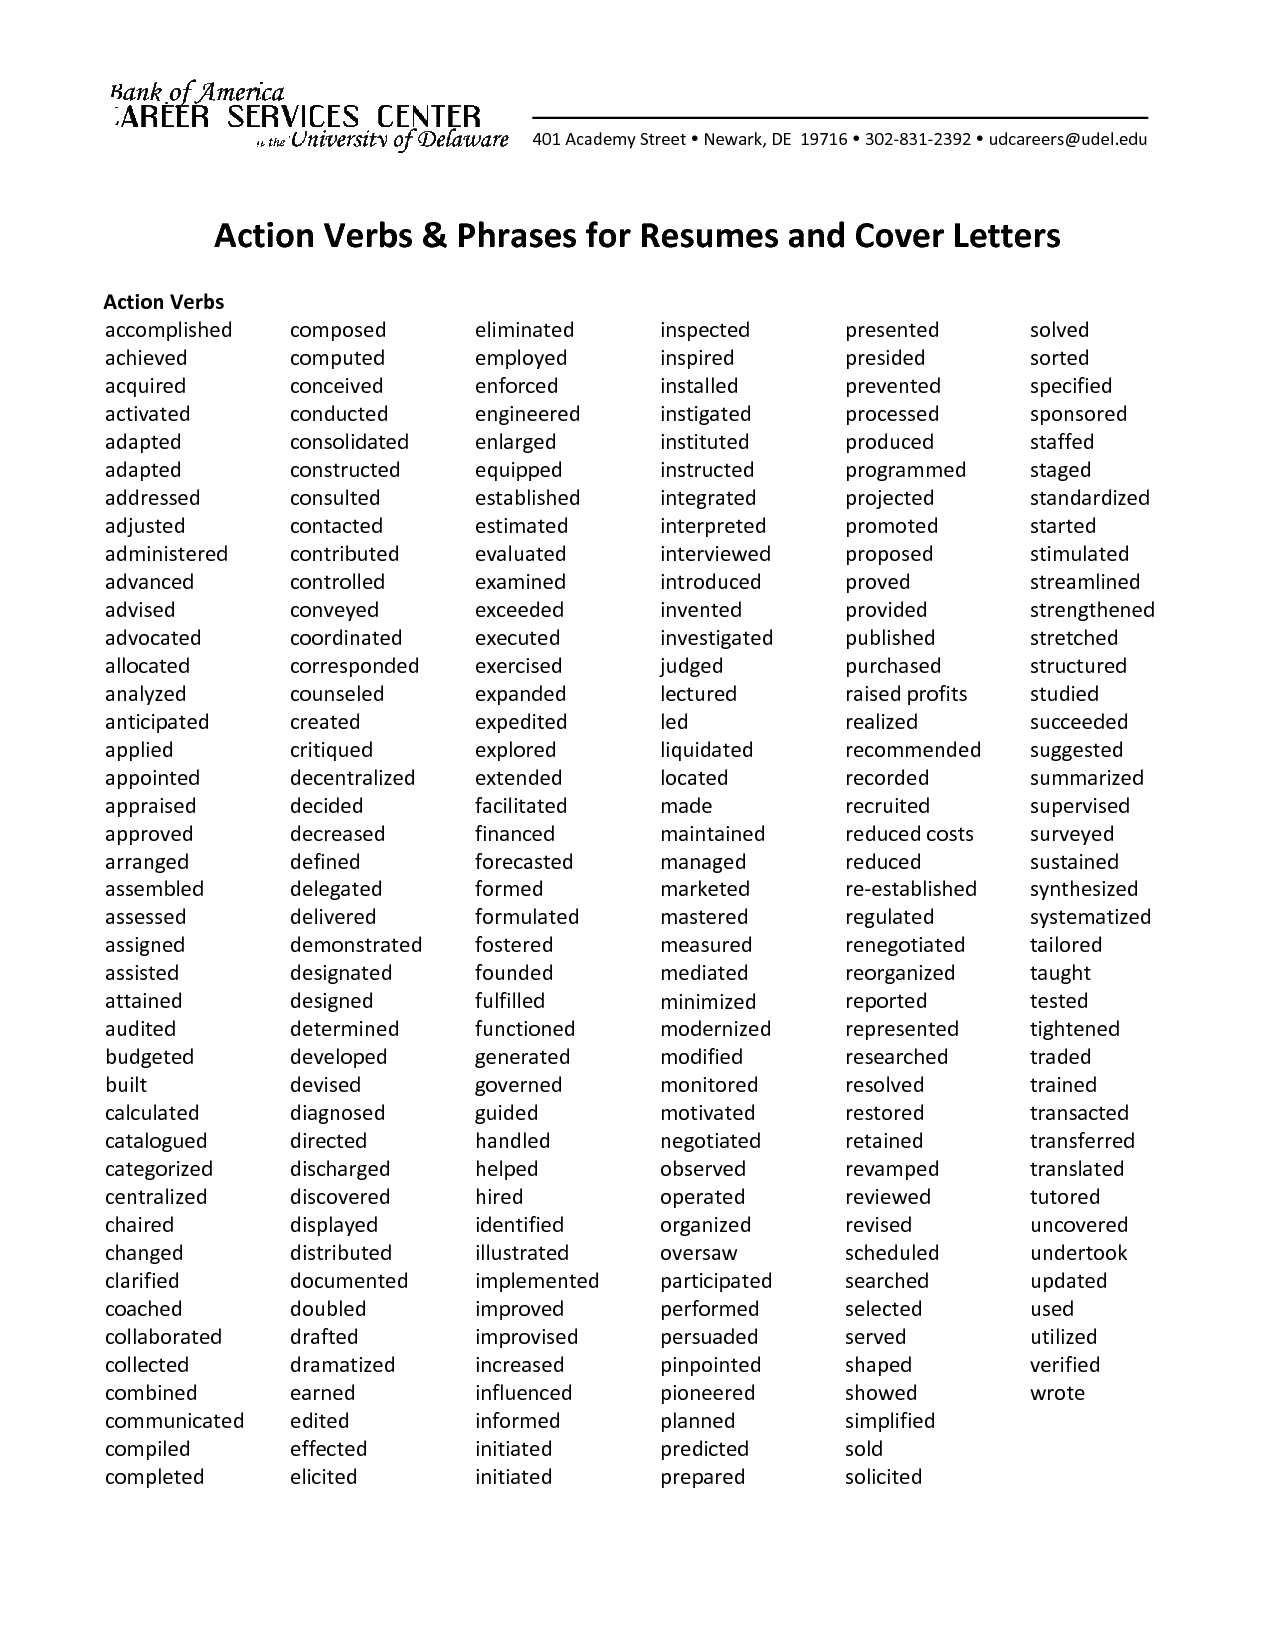 Resume Words To Use For Resume adjective for resume writing adjectives the best verbs to use in cheat sheet action your